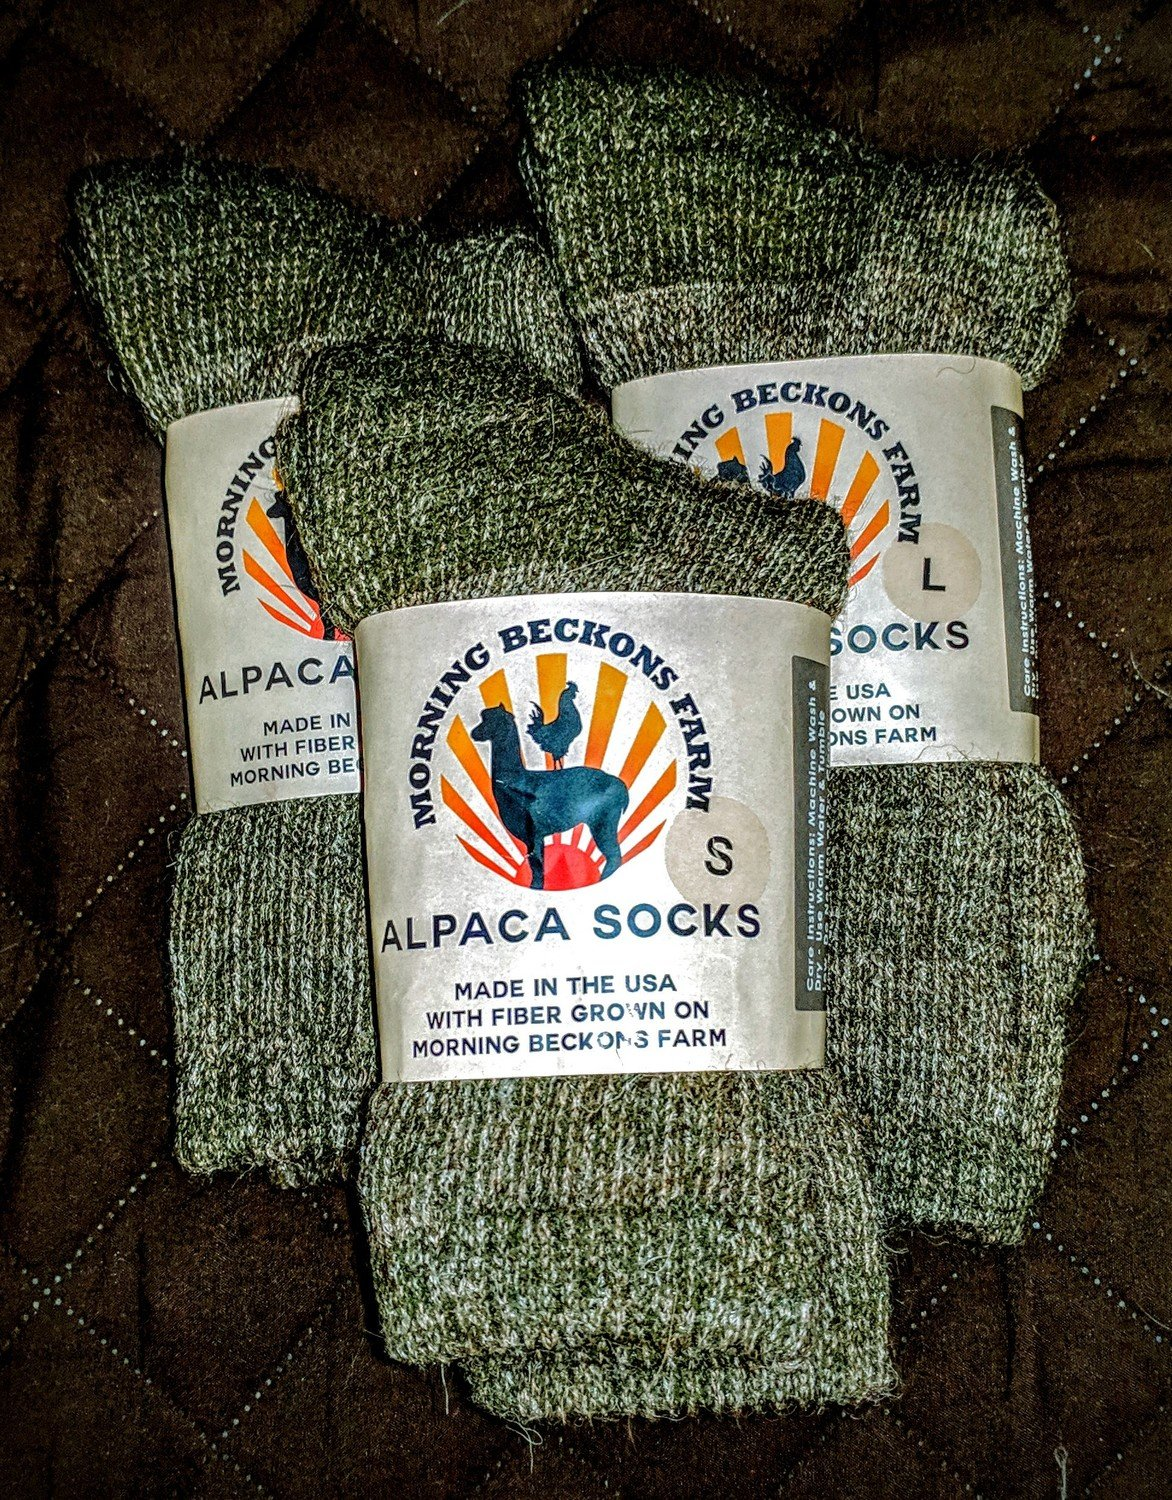 Morning Beckons Alpaca Socks